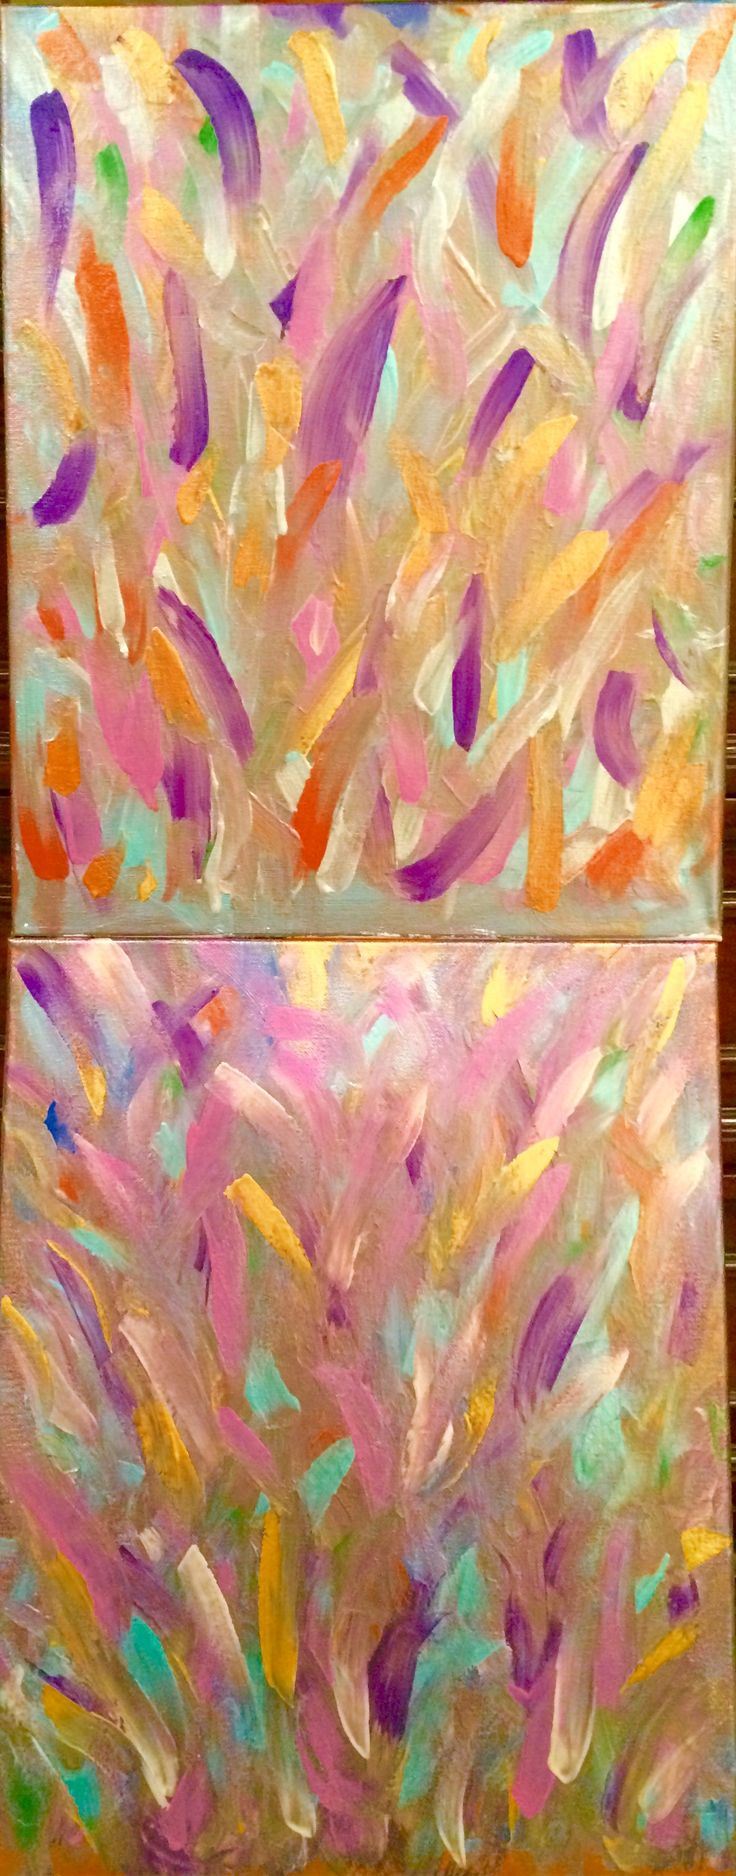 """(11"""" x 14"""" X 1/2"""") Metallic Acrylic Spray Paint with Melted Crayons •• SOLD ••"""